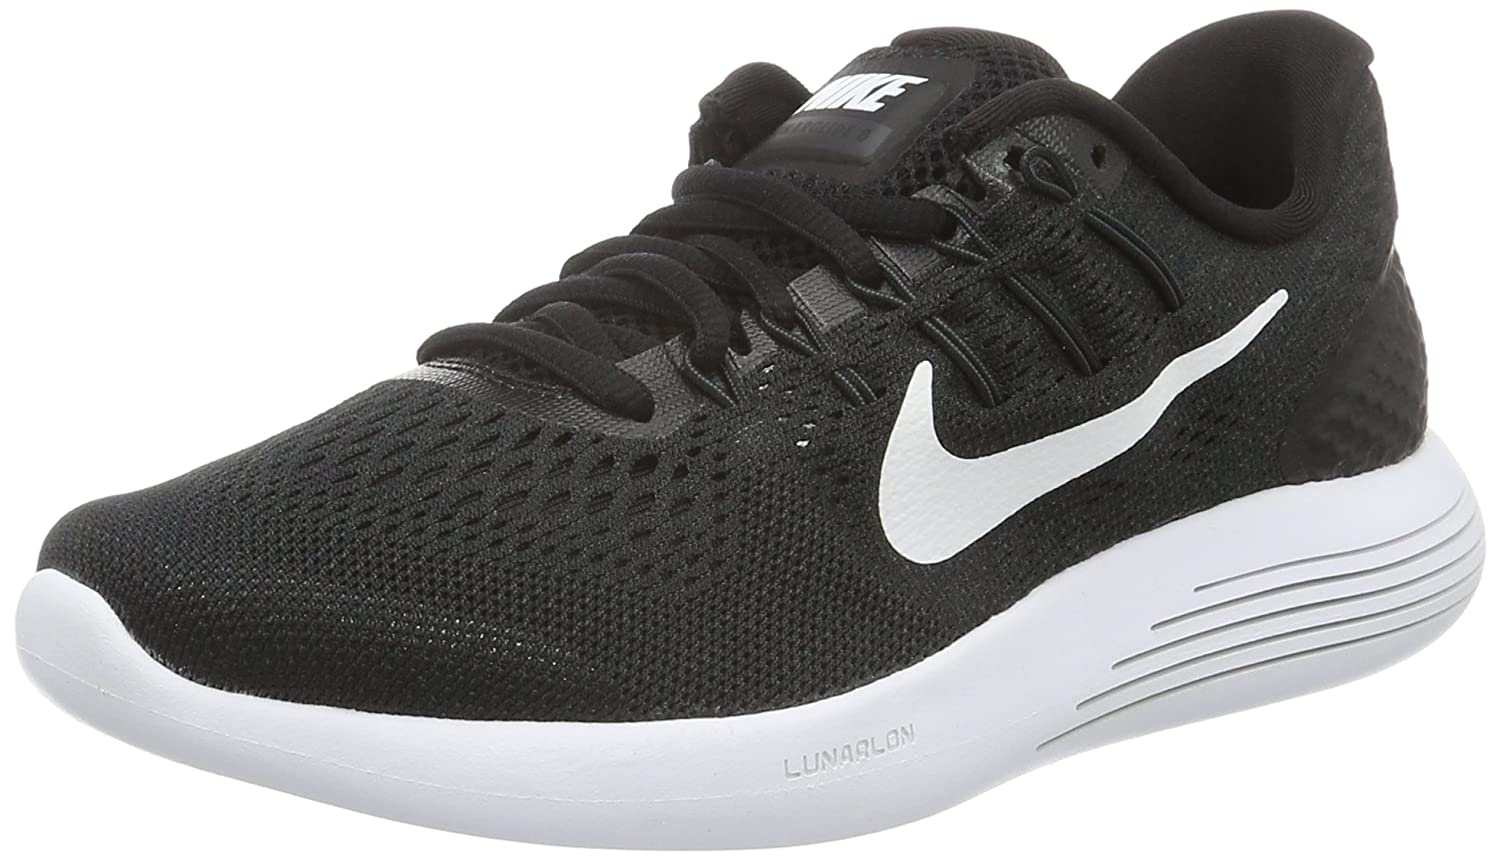 Nike Mens Lunarglide 8, Black / White - Anthracite B019DF3HR0 10 D(M) US|Black/White/Anthracite